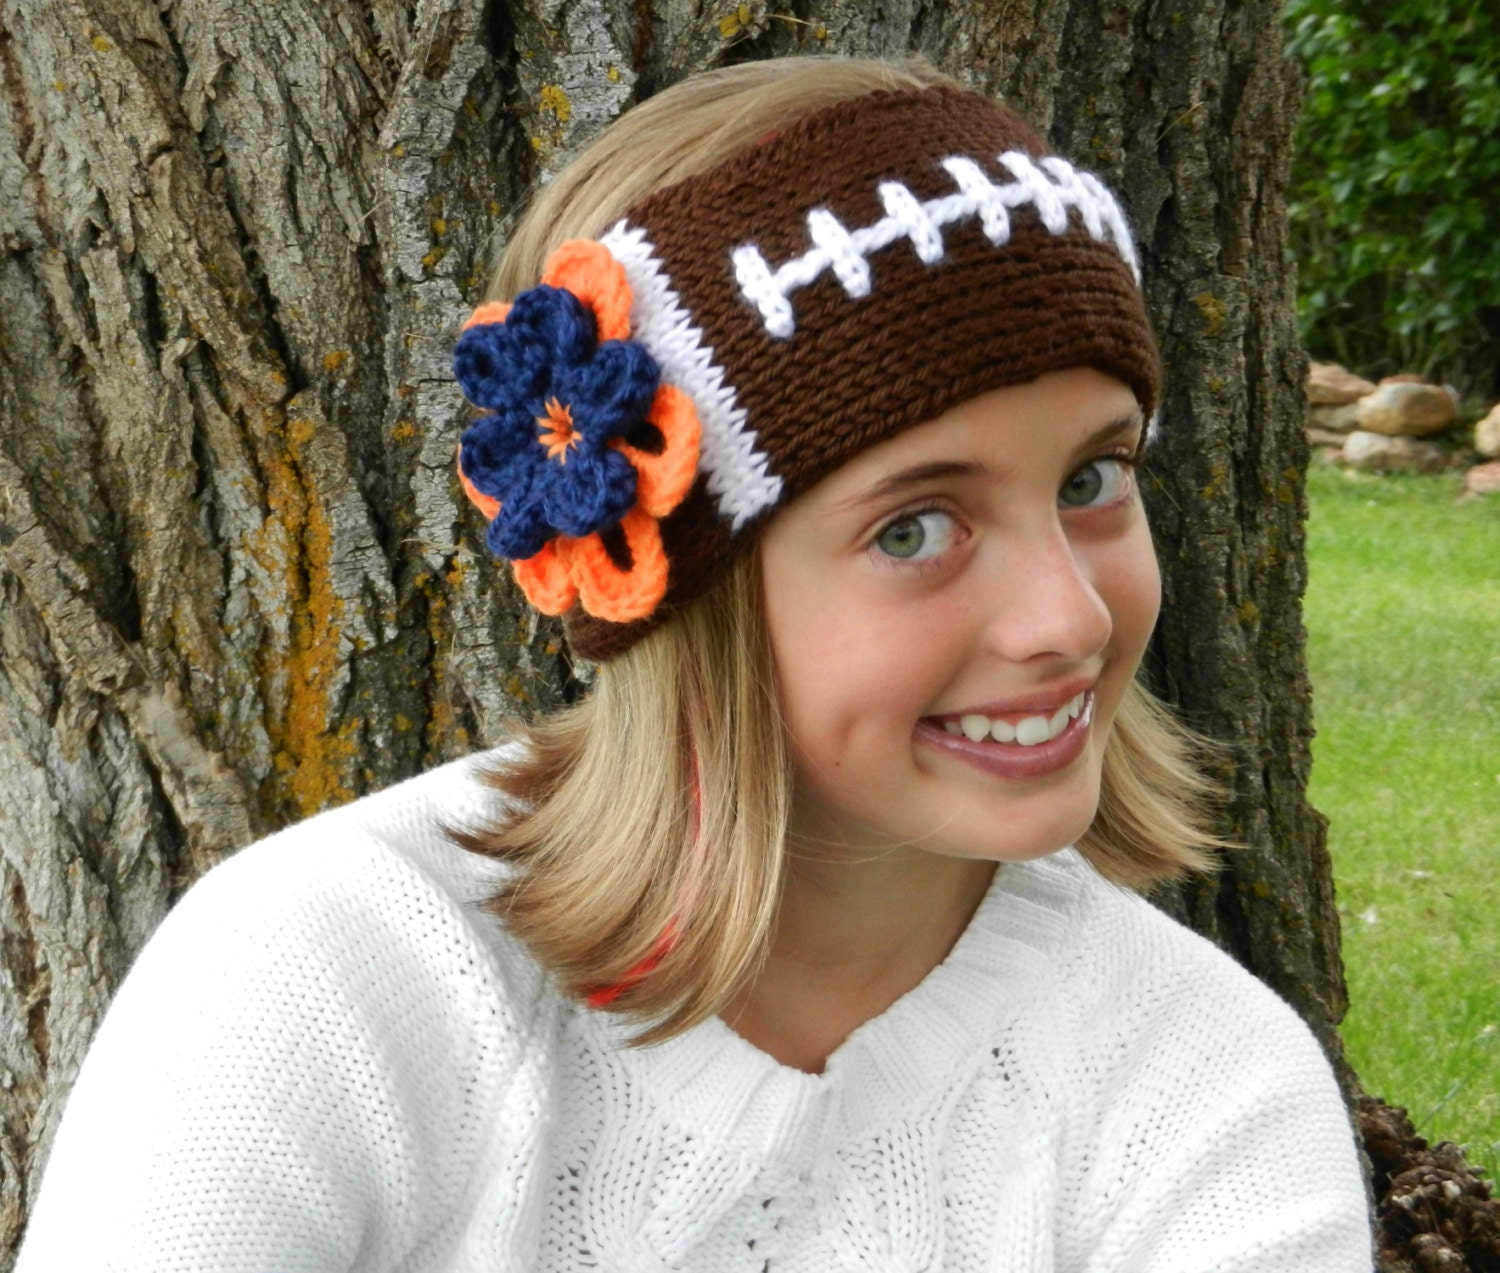 Tunisian Knit-Look Crochet Football Headband